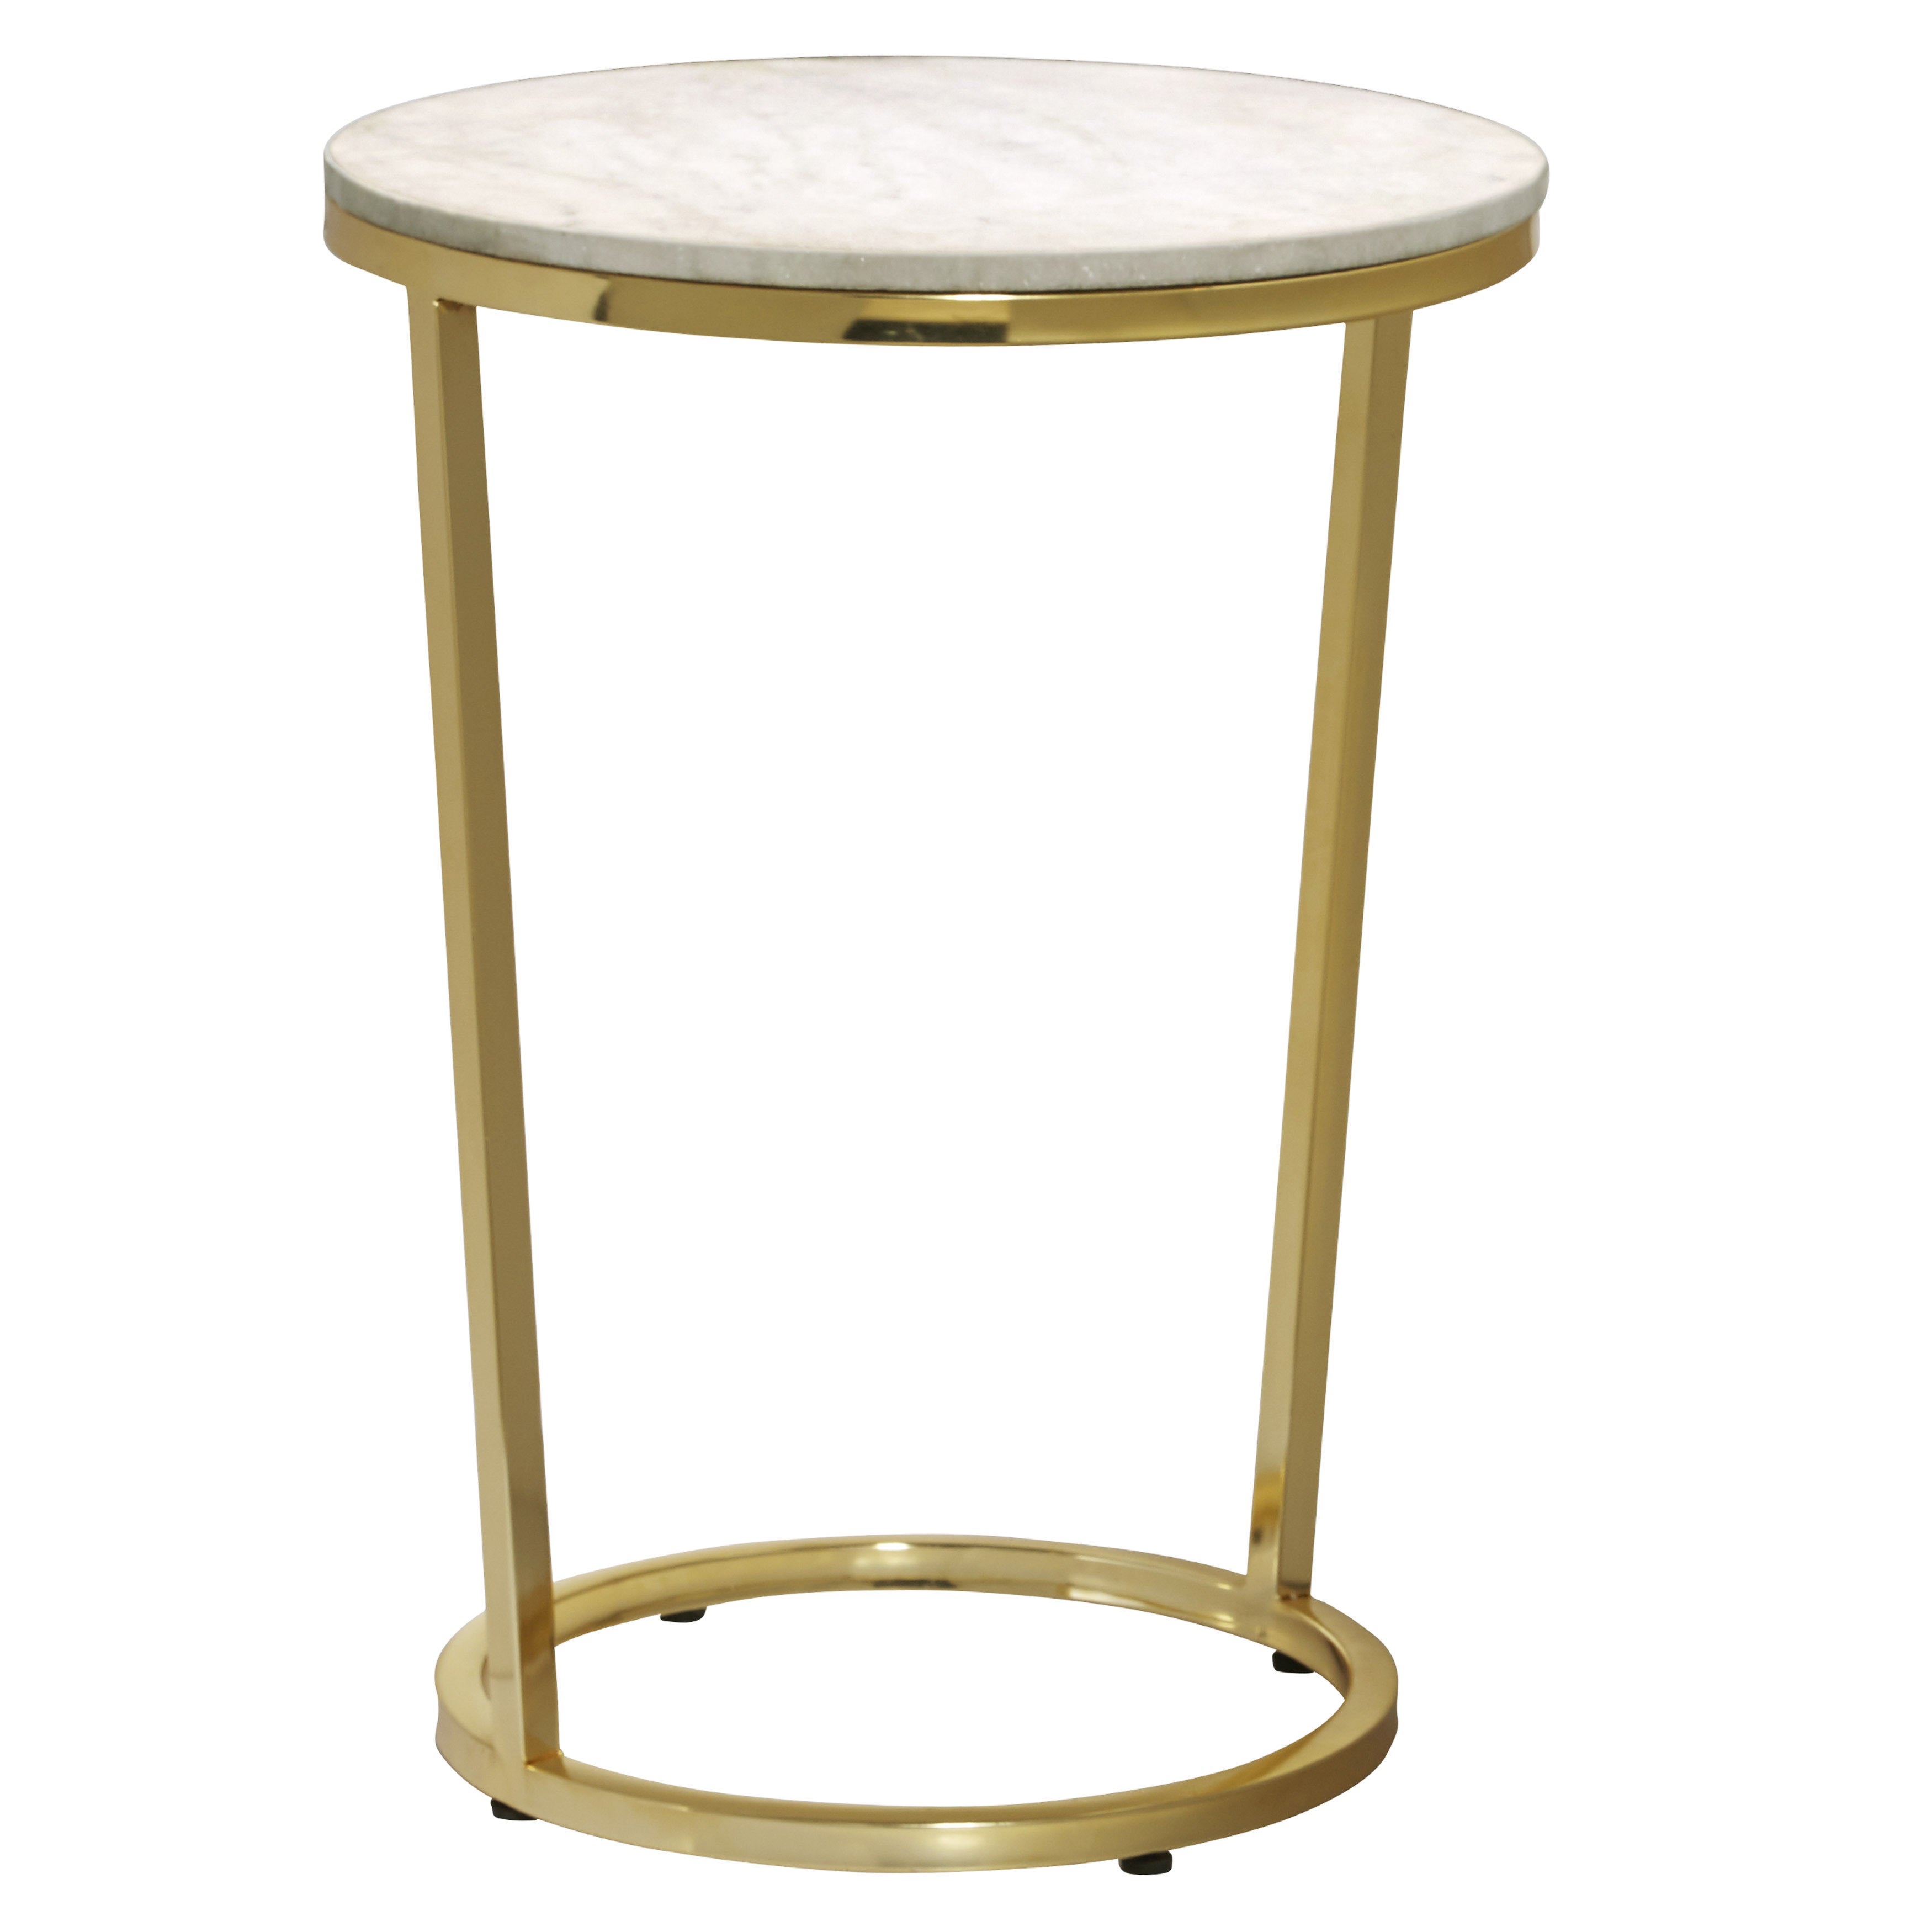 Shop Emory White And Gold Marble Round Accent Table Free Shipping